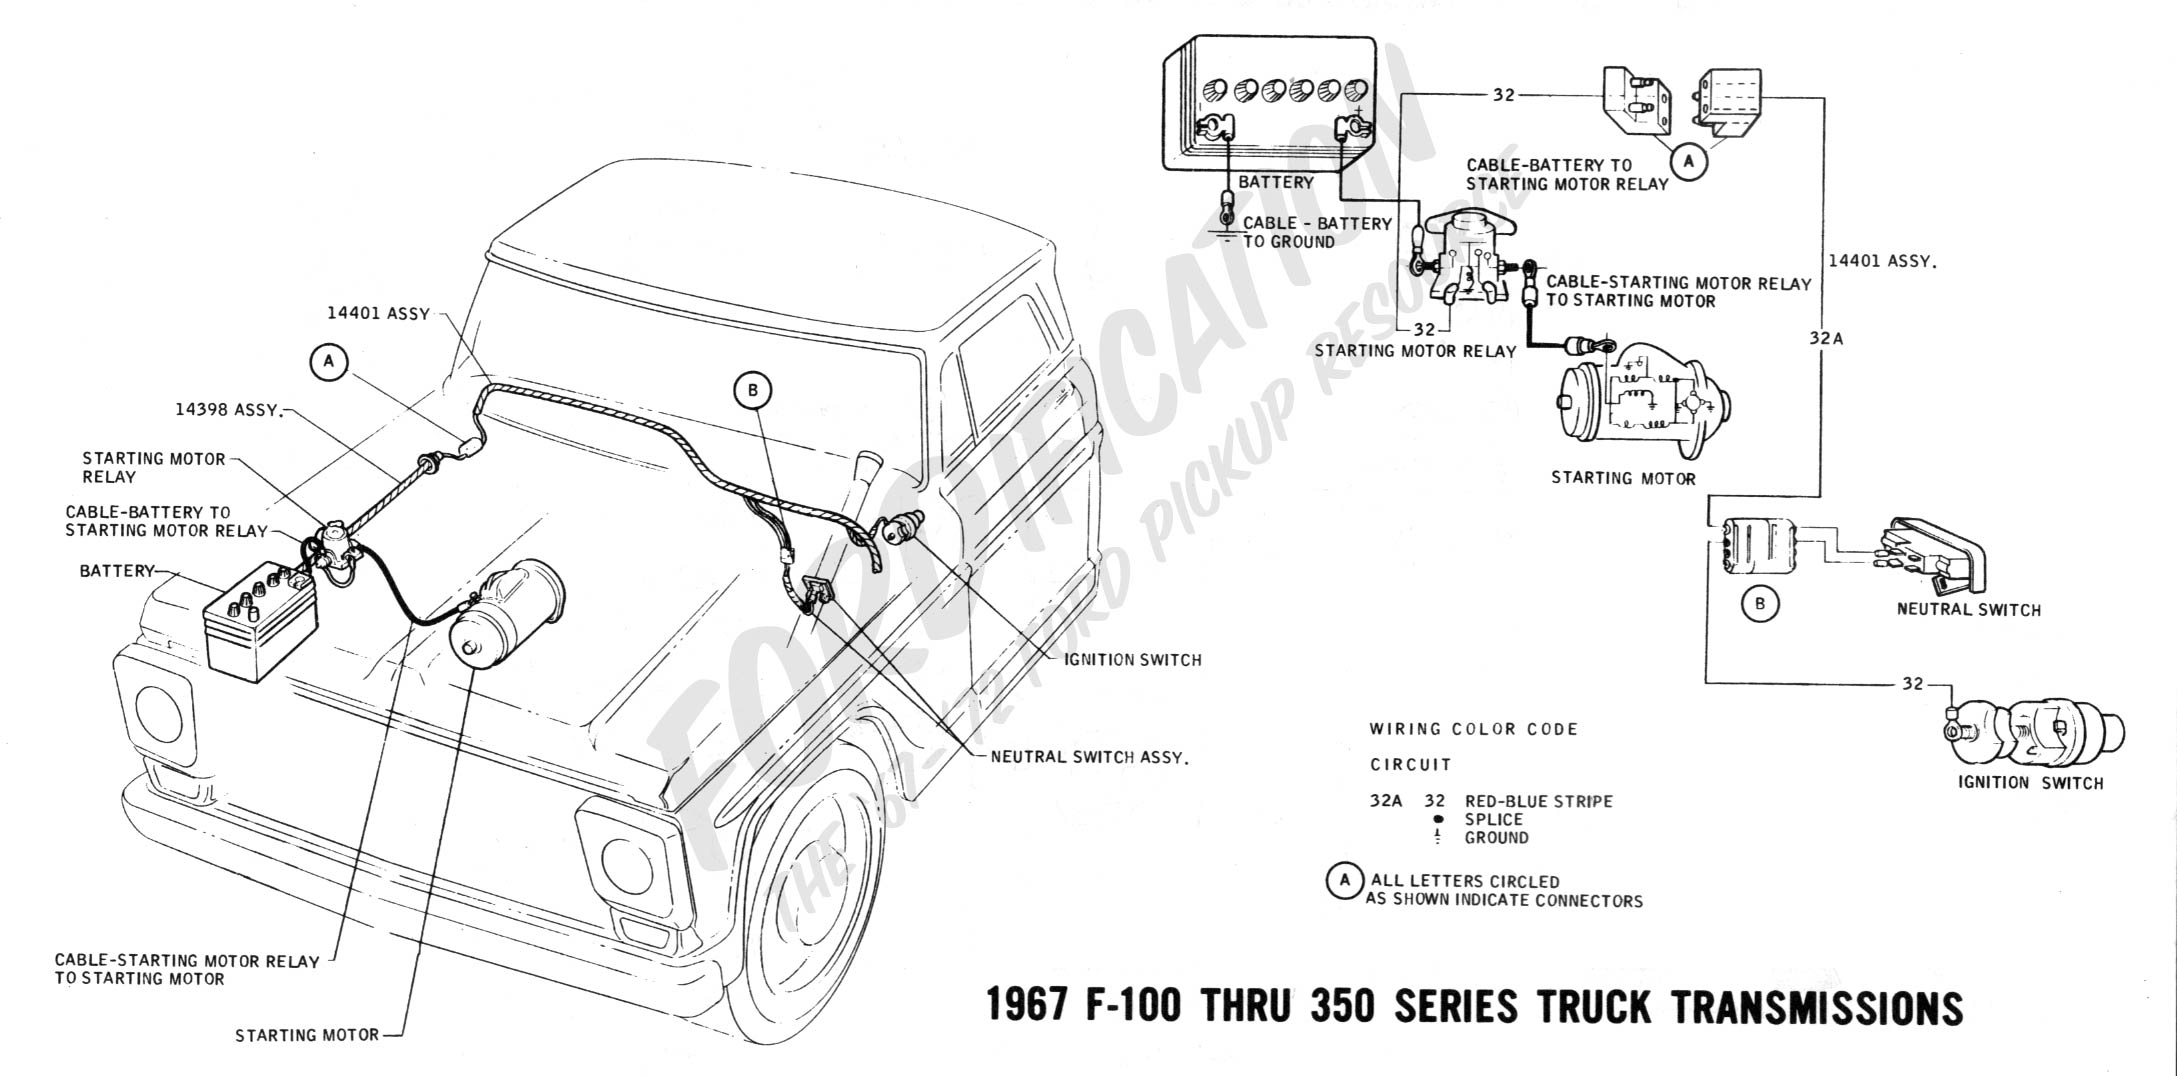 1980 Ford 460 Wiring Diagram Explore Schematic 1998 Mustang Truck Technical Drawings And Schematics Section H Rh Fordification Com 2004 Radio